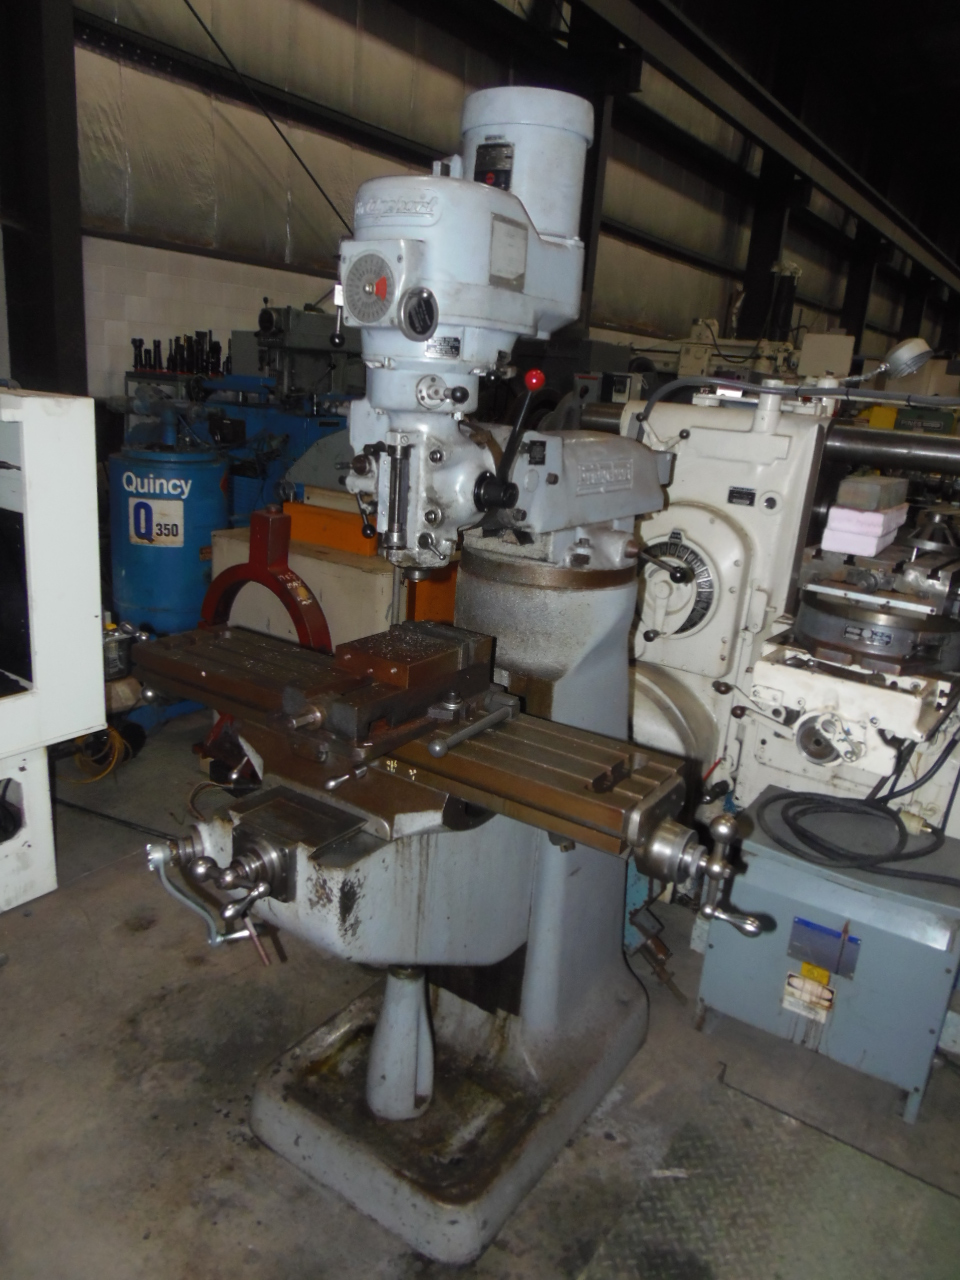 BRIDGEPORT SERIES I VERTICAL MILL, VARIABLE SPEED HEAD, 9 x 42 TABLE, COLLETS